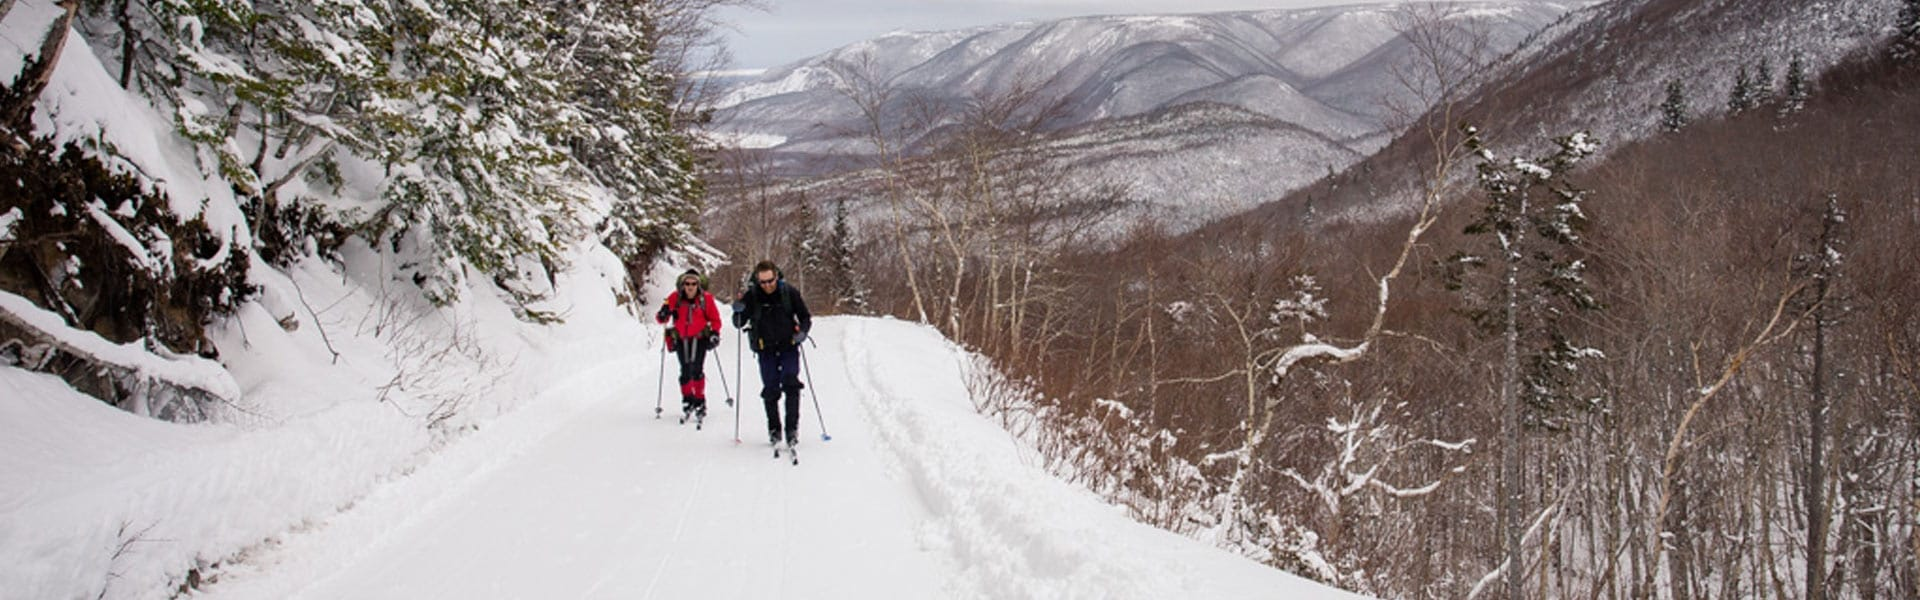 A couple cross country ski with snowy mountains in the background